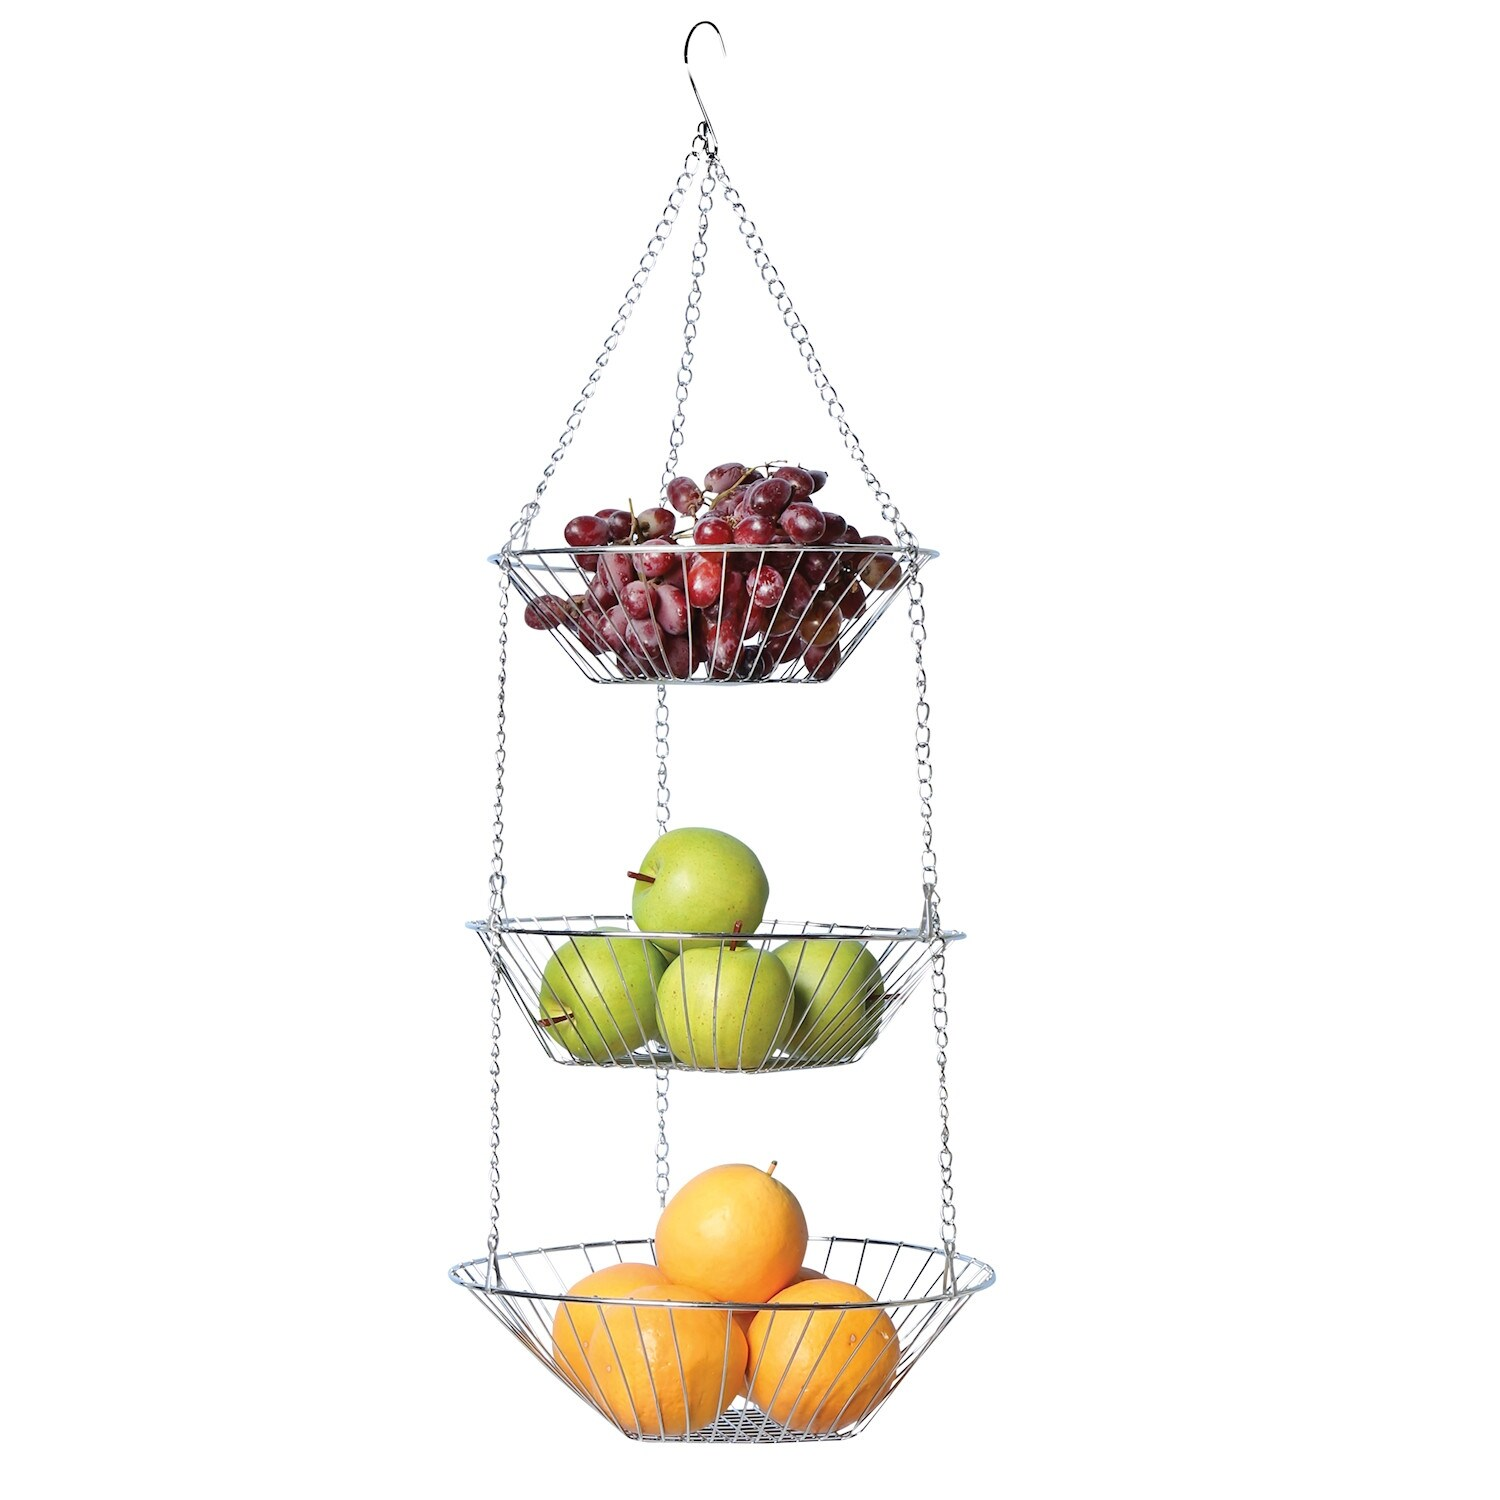 Wire Fruit Bowls Home District 3 Tier Chrome Hanging Fruit Basket Adjustable Graduated Wire Food Storage Bowls Metal